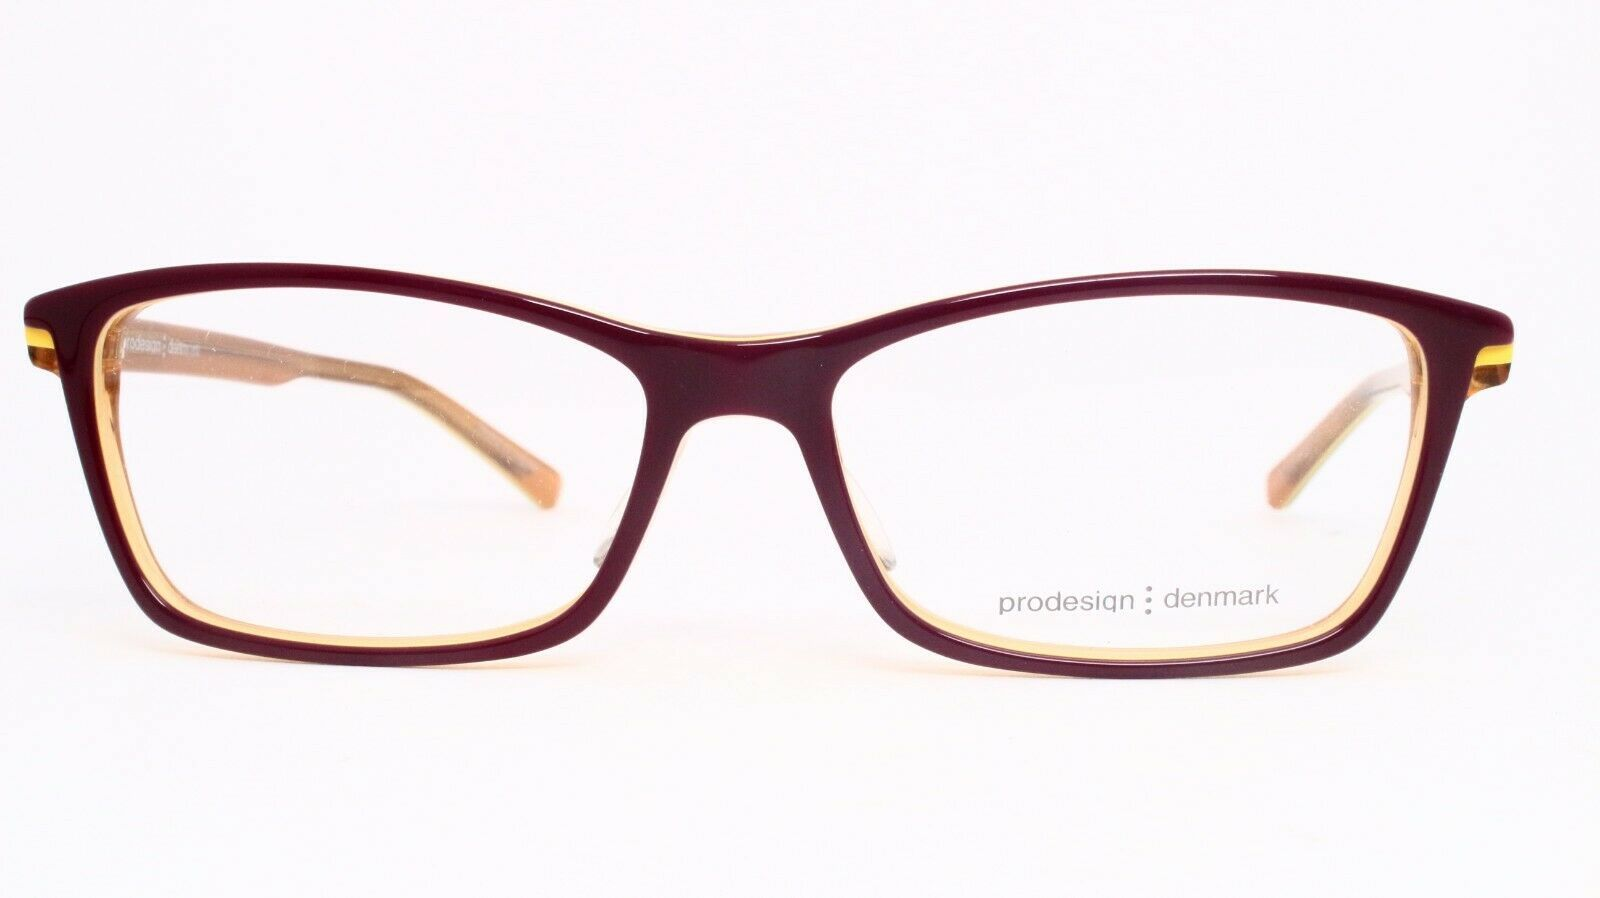 NEW PRODESIGN DENMARK 1759 1 c.3732 PLUM EYEGLASSES FRAME 55-15-140 MK358 Japan image 2